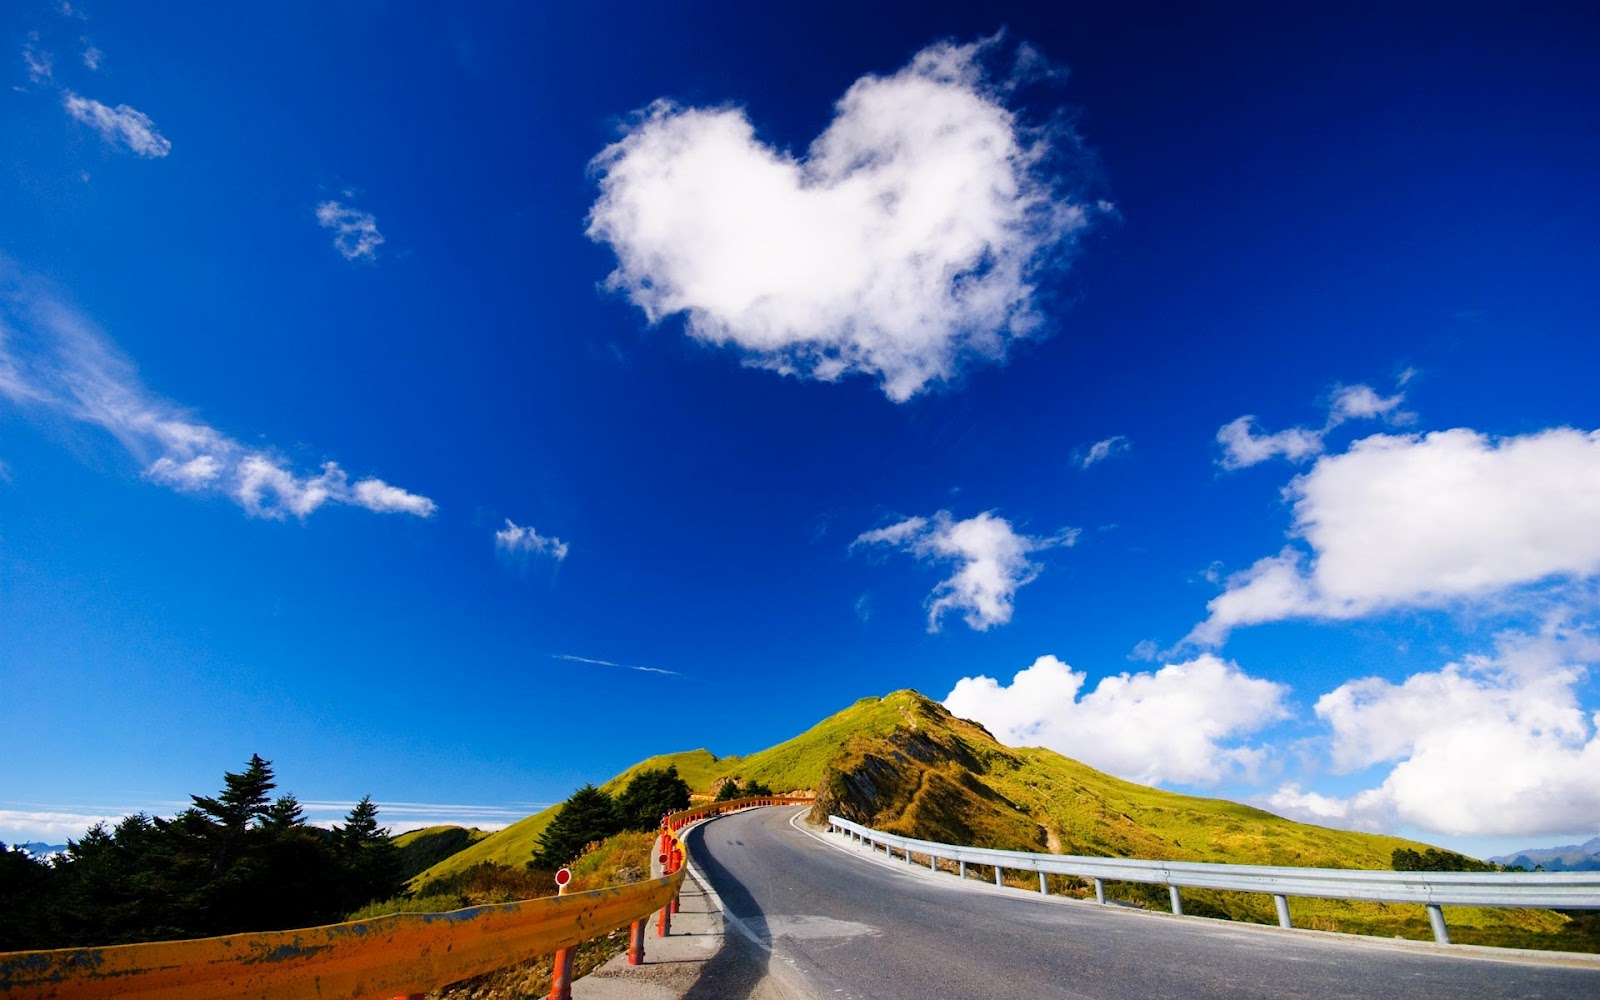 cloud beautiful full hd nature background wallpapers for laptop hdjpg 1600x1000